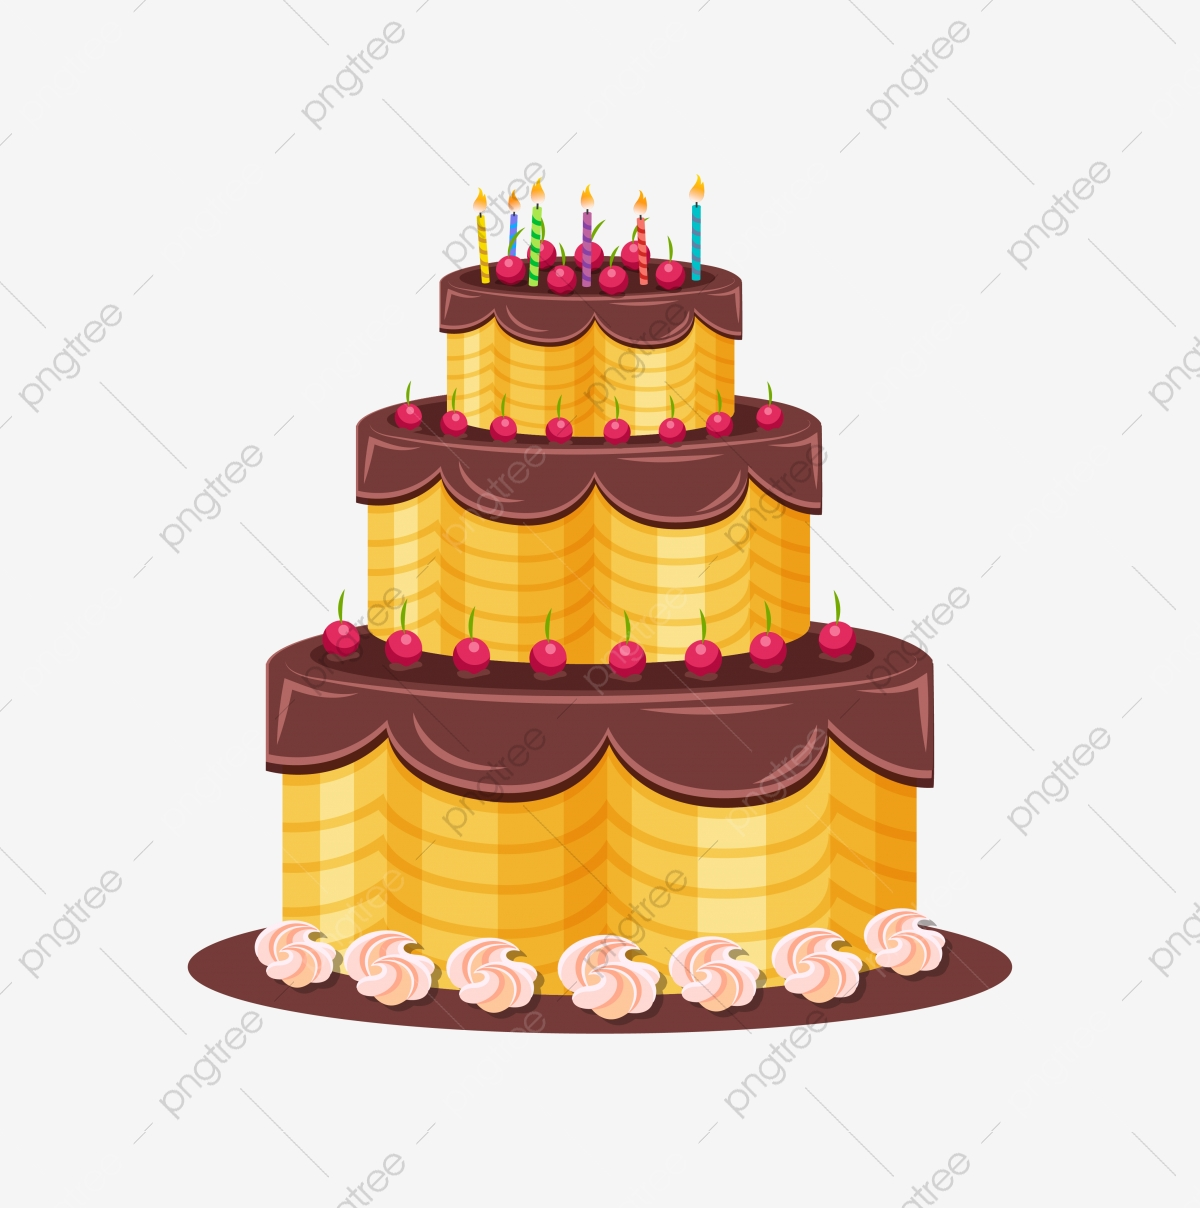 Happy Birthday Cake Clipart PNG